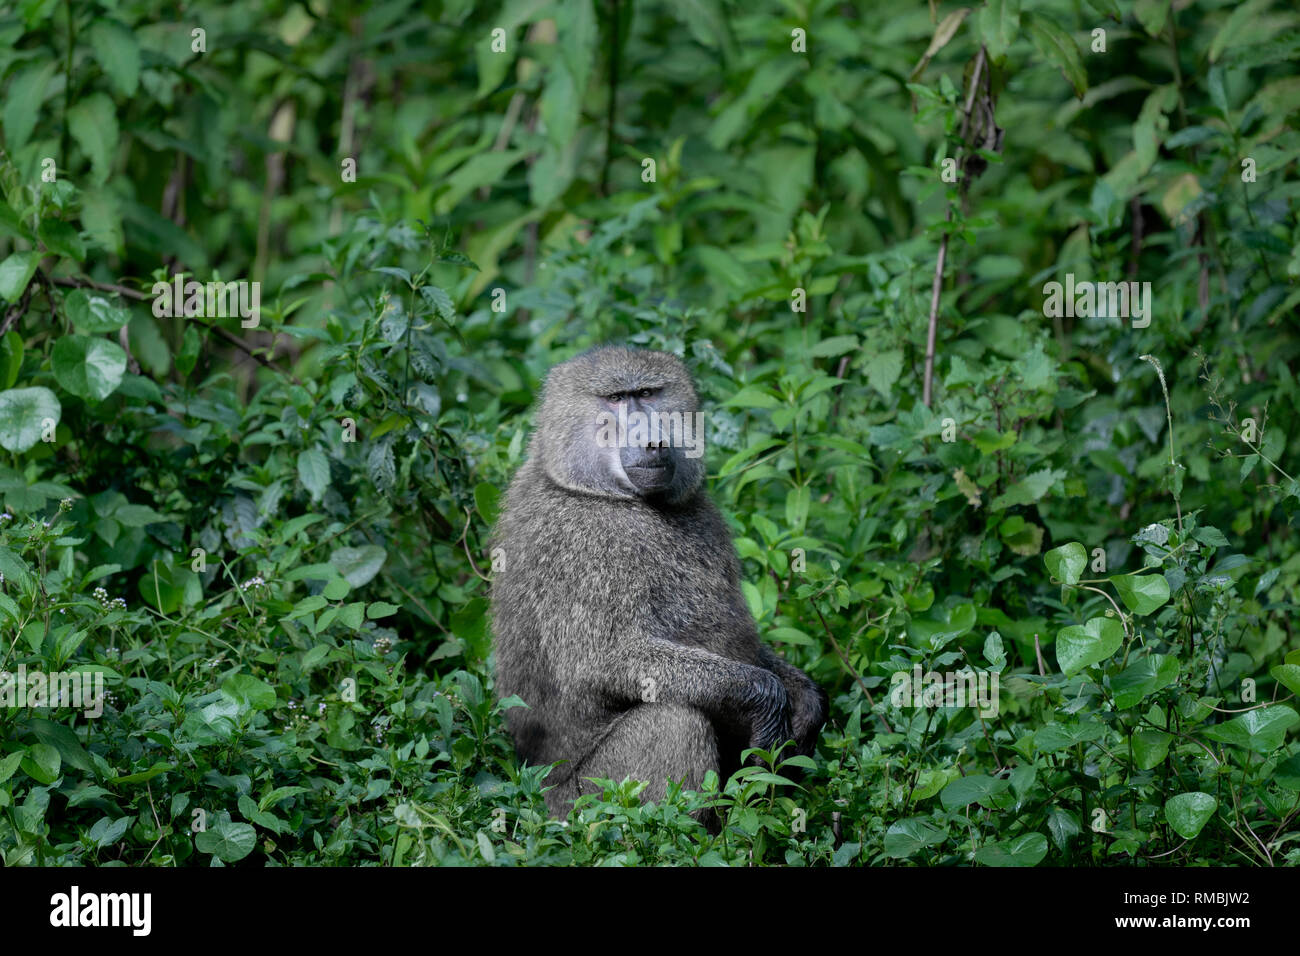 Olive Baboon in Ethiopia's cloud forest, Harenna Forest, Southern Ethiopia, Africa. - Stock Image